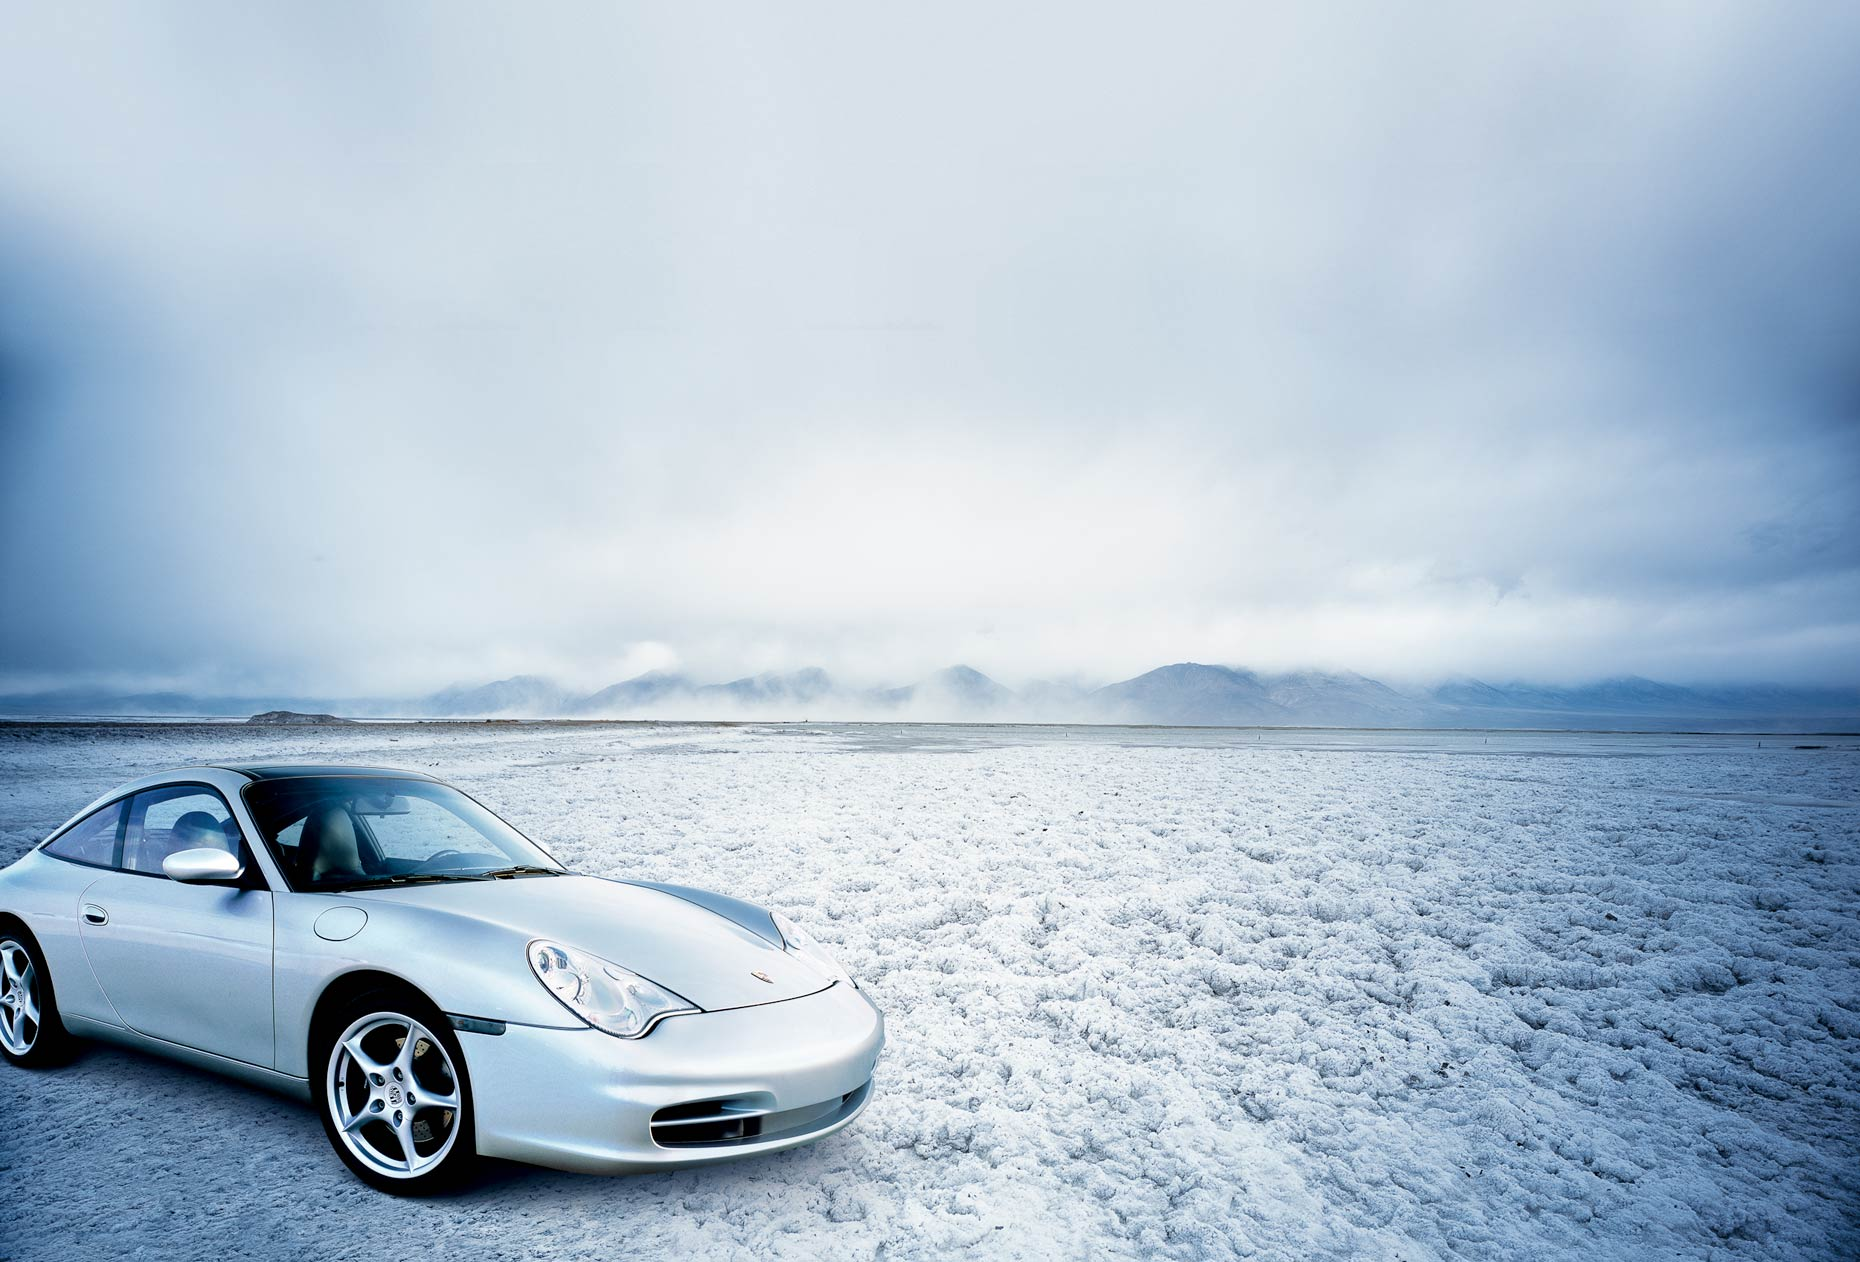 Porsche-Salt-flat-high-res.jpg